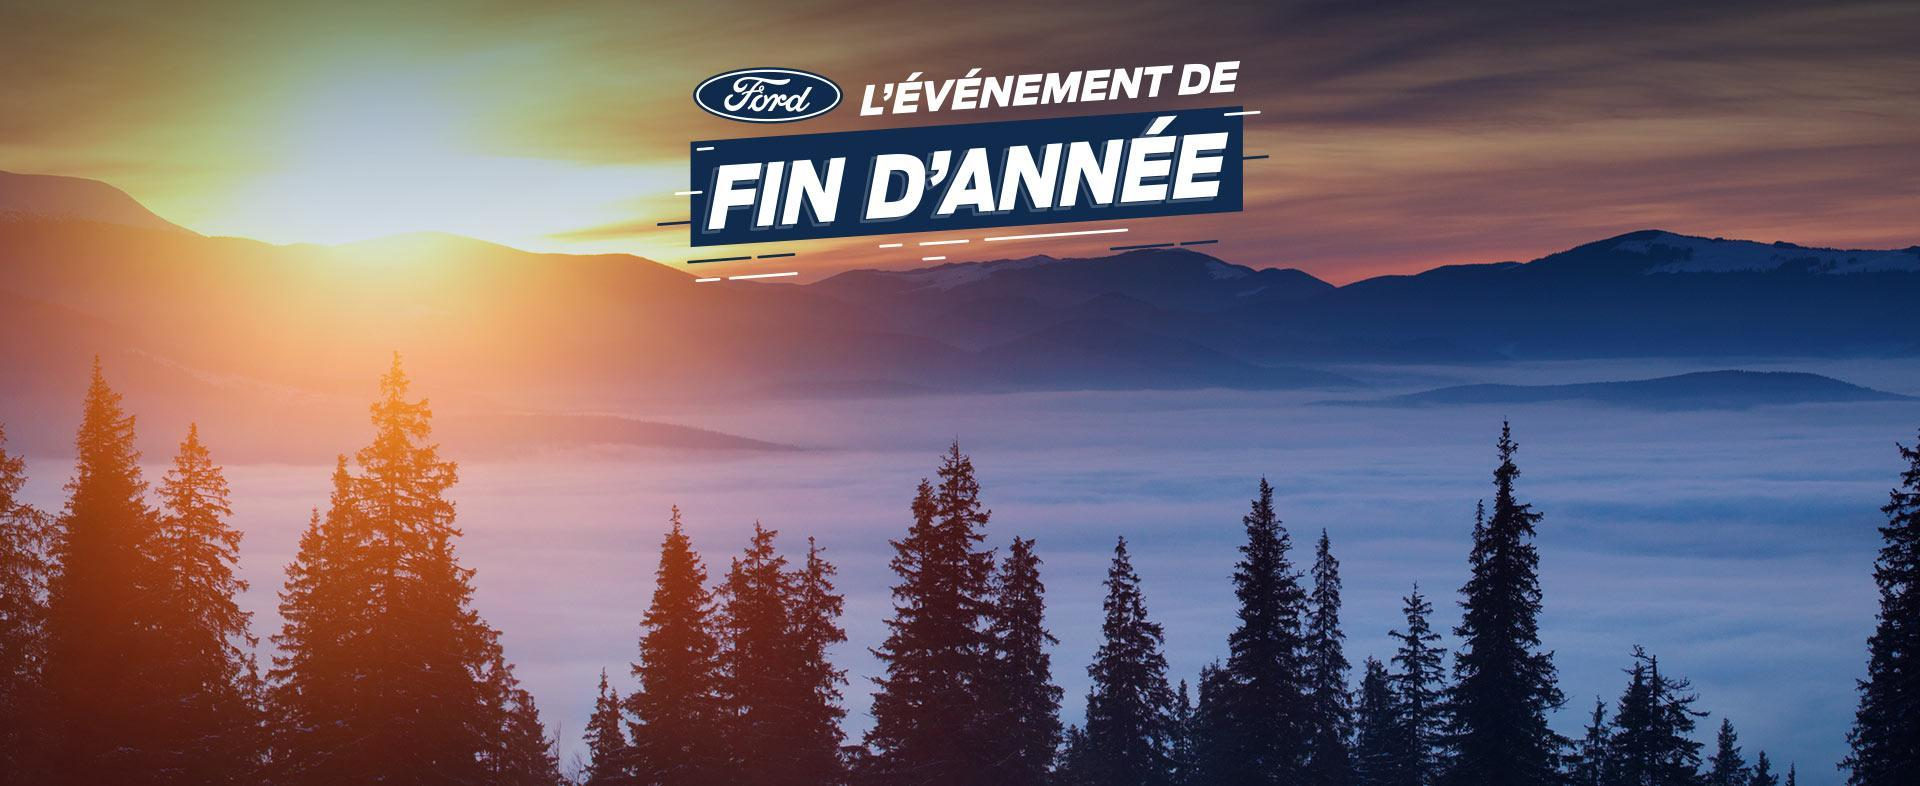 2019 Ford SUVs Year End Event